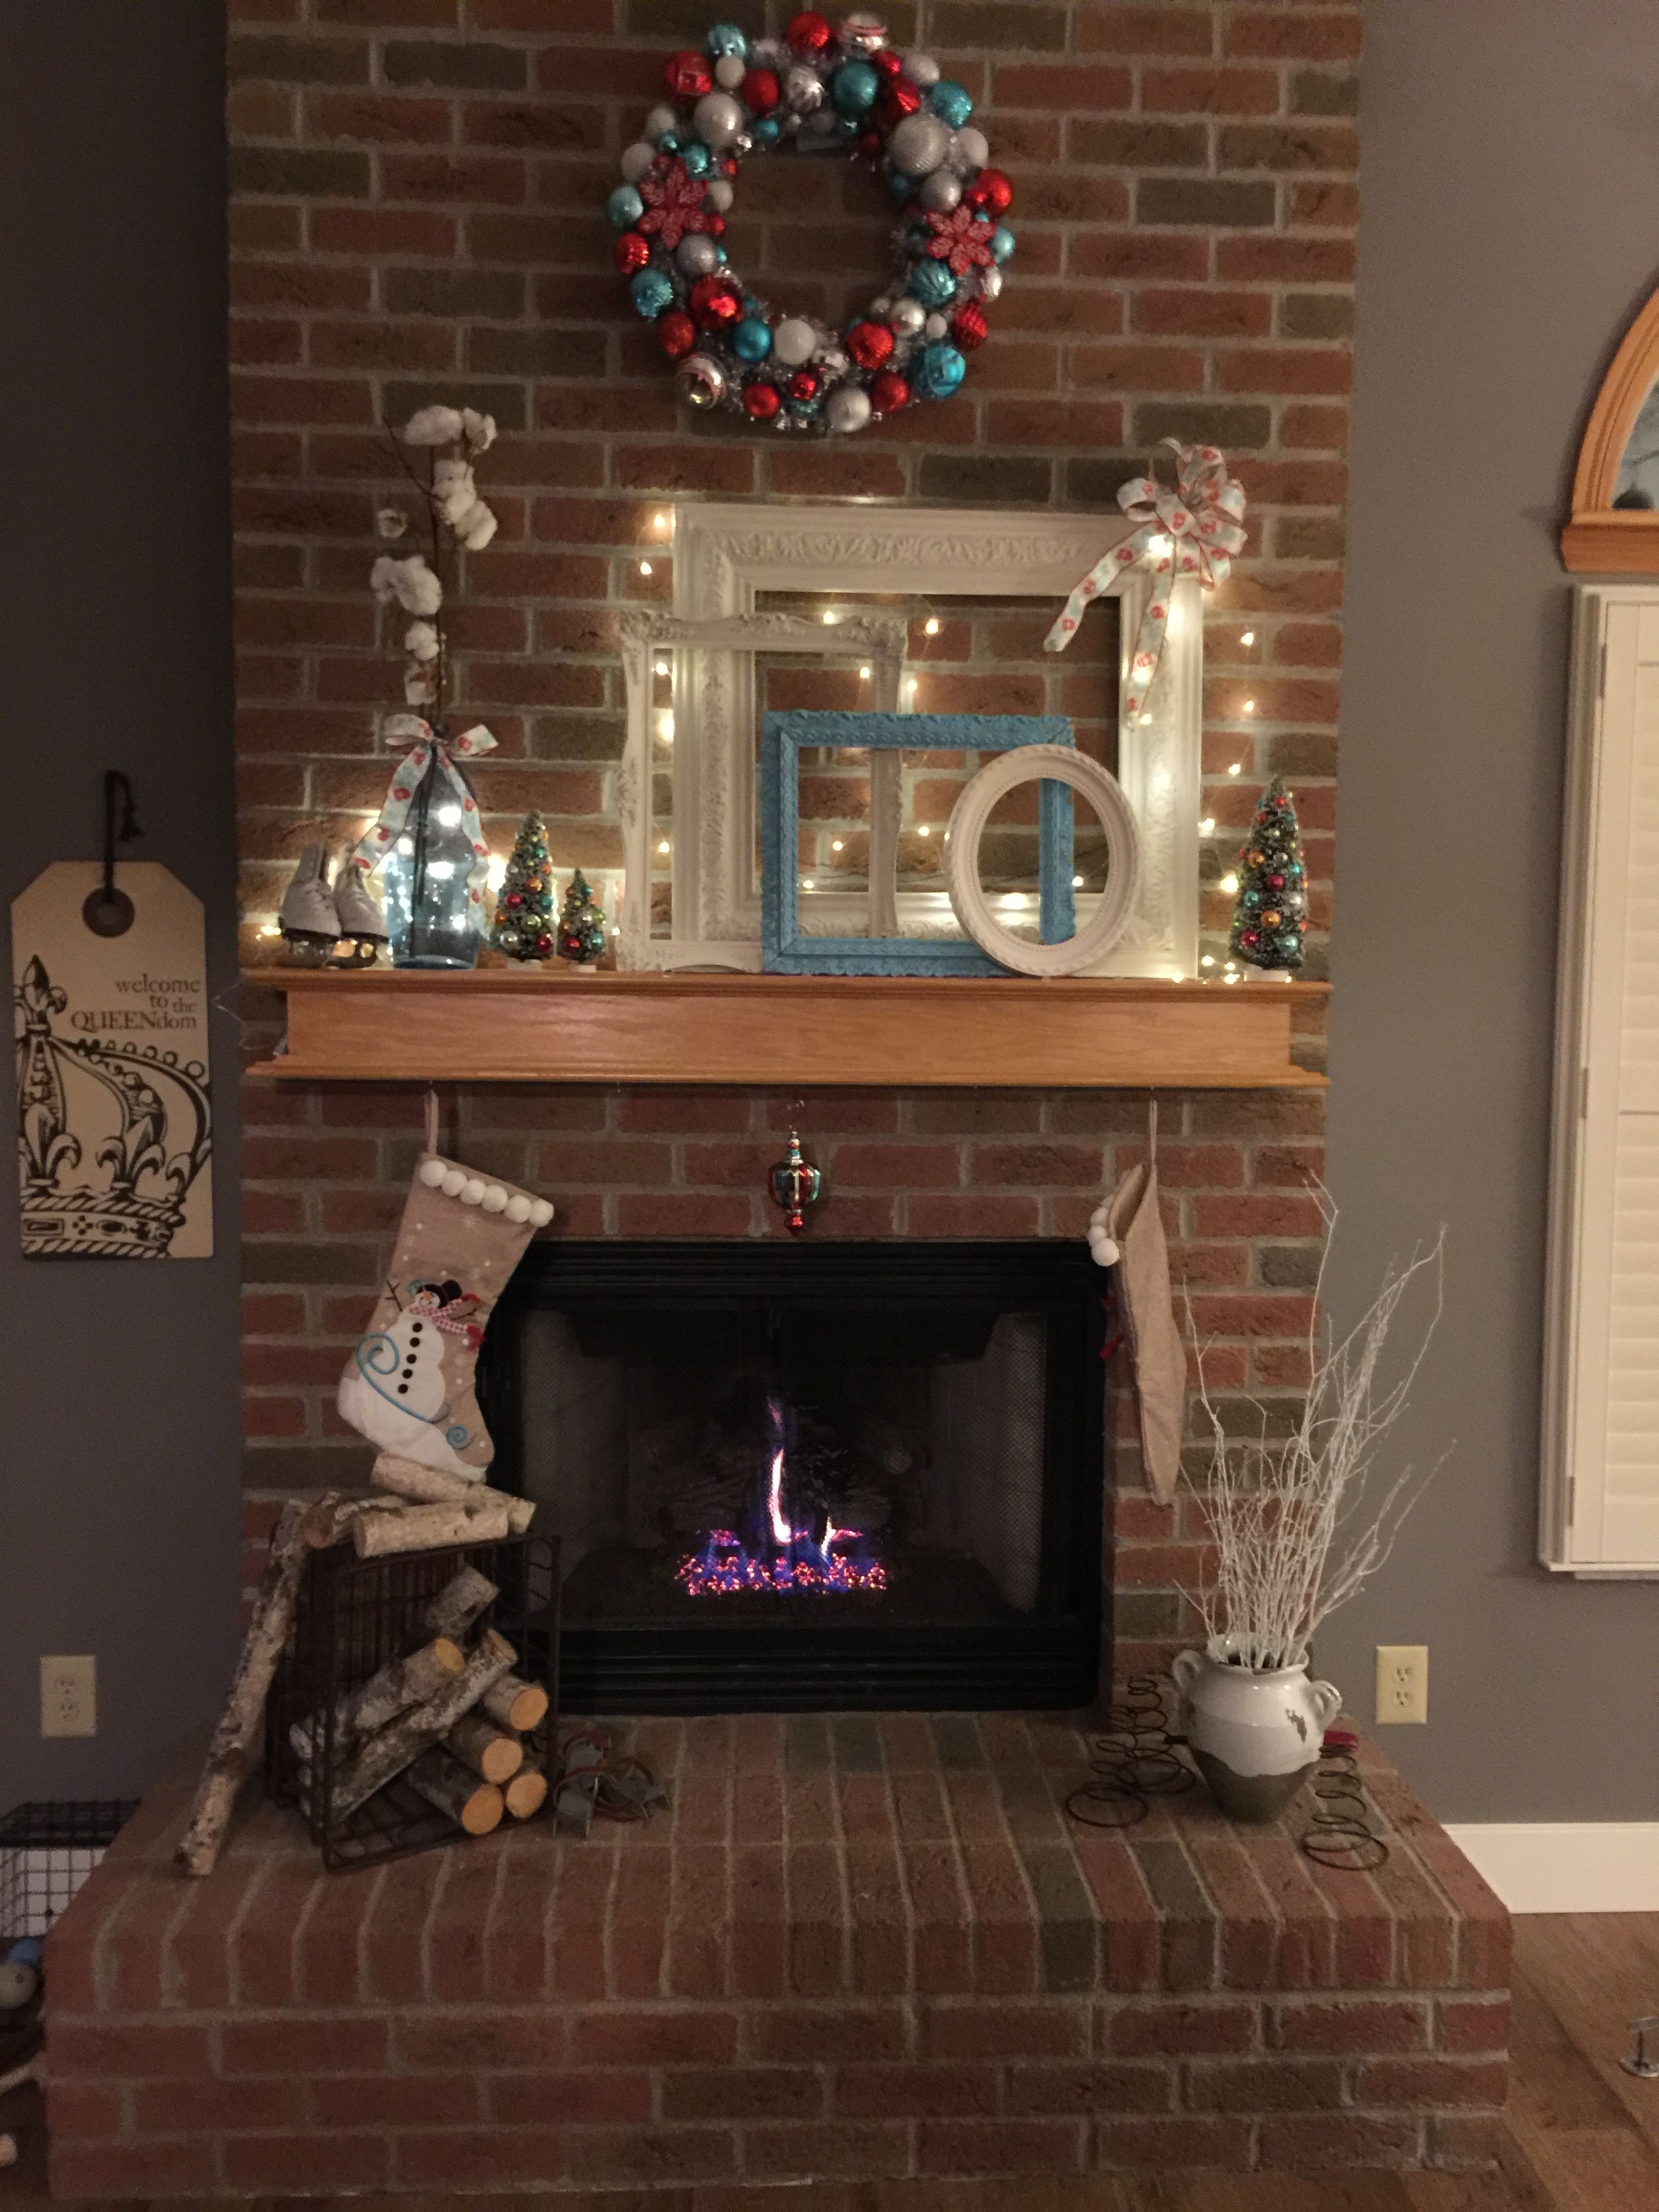 Decorations For Fireplaces Red And Turquoise Christmas Fireplace Decorations Fireplaces And